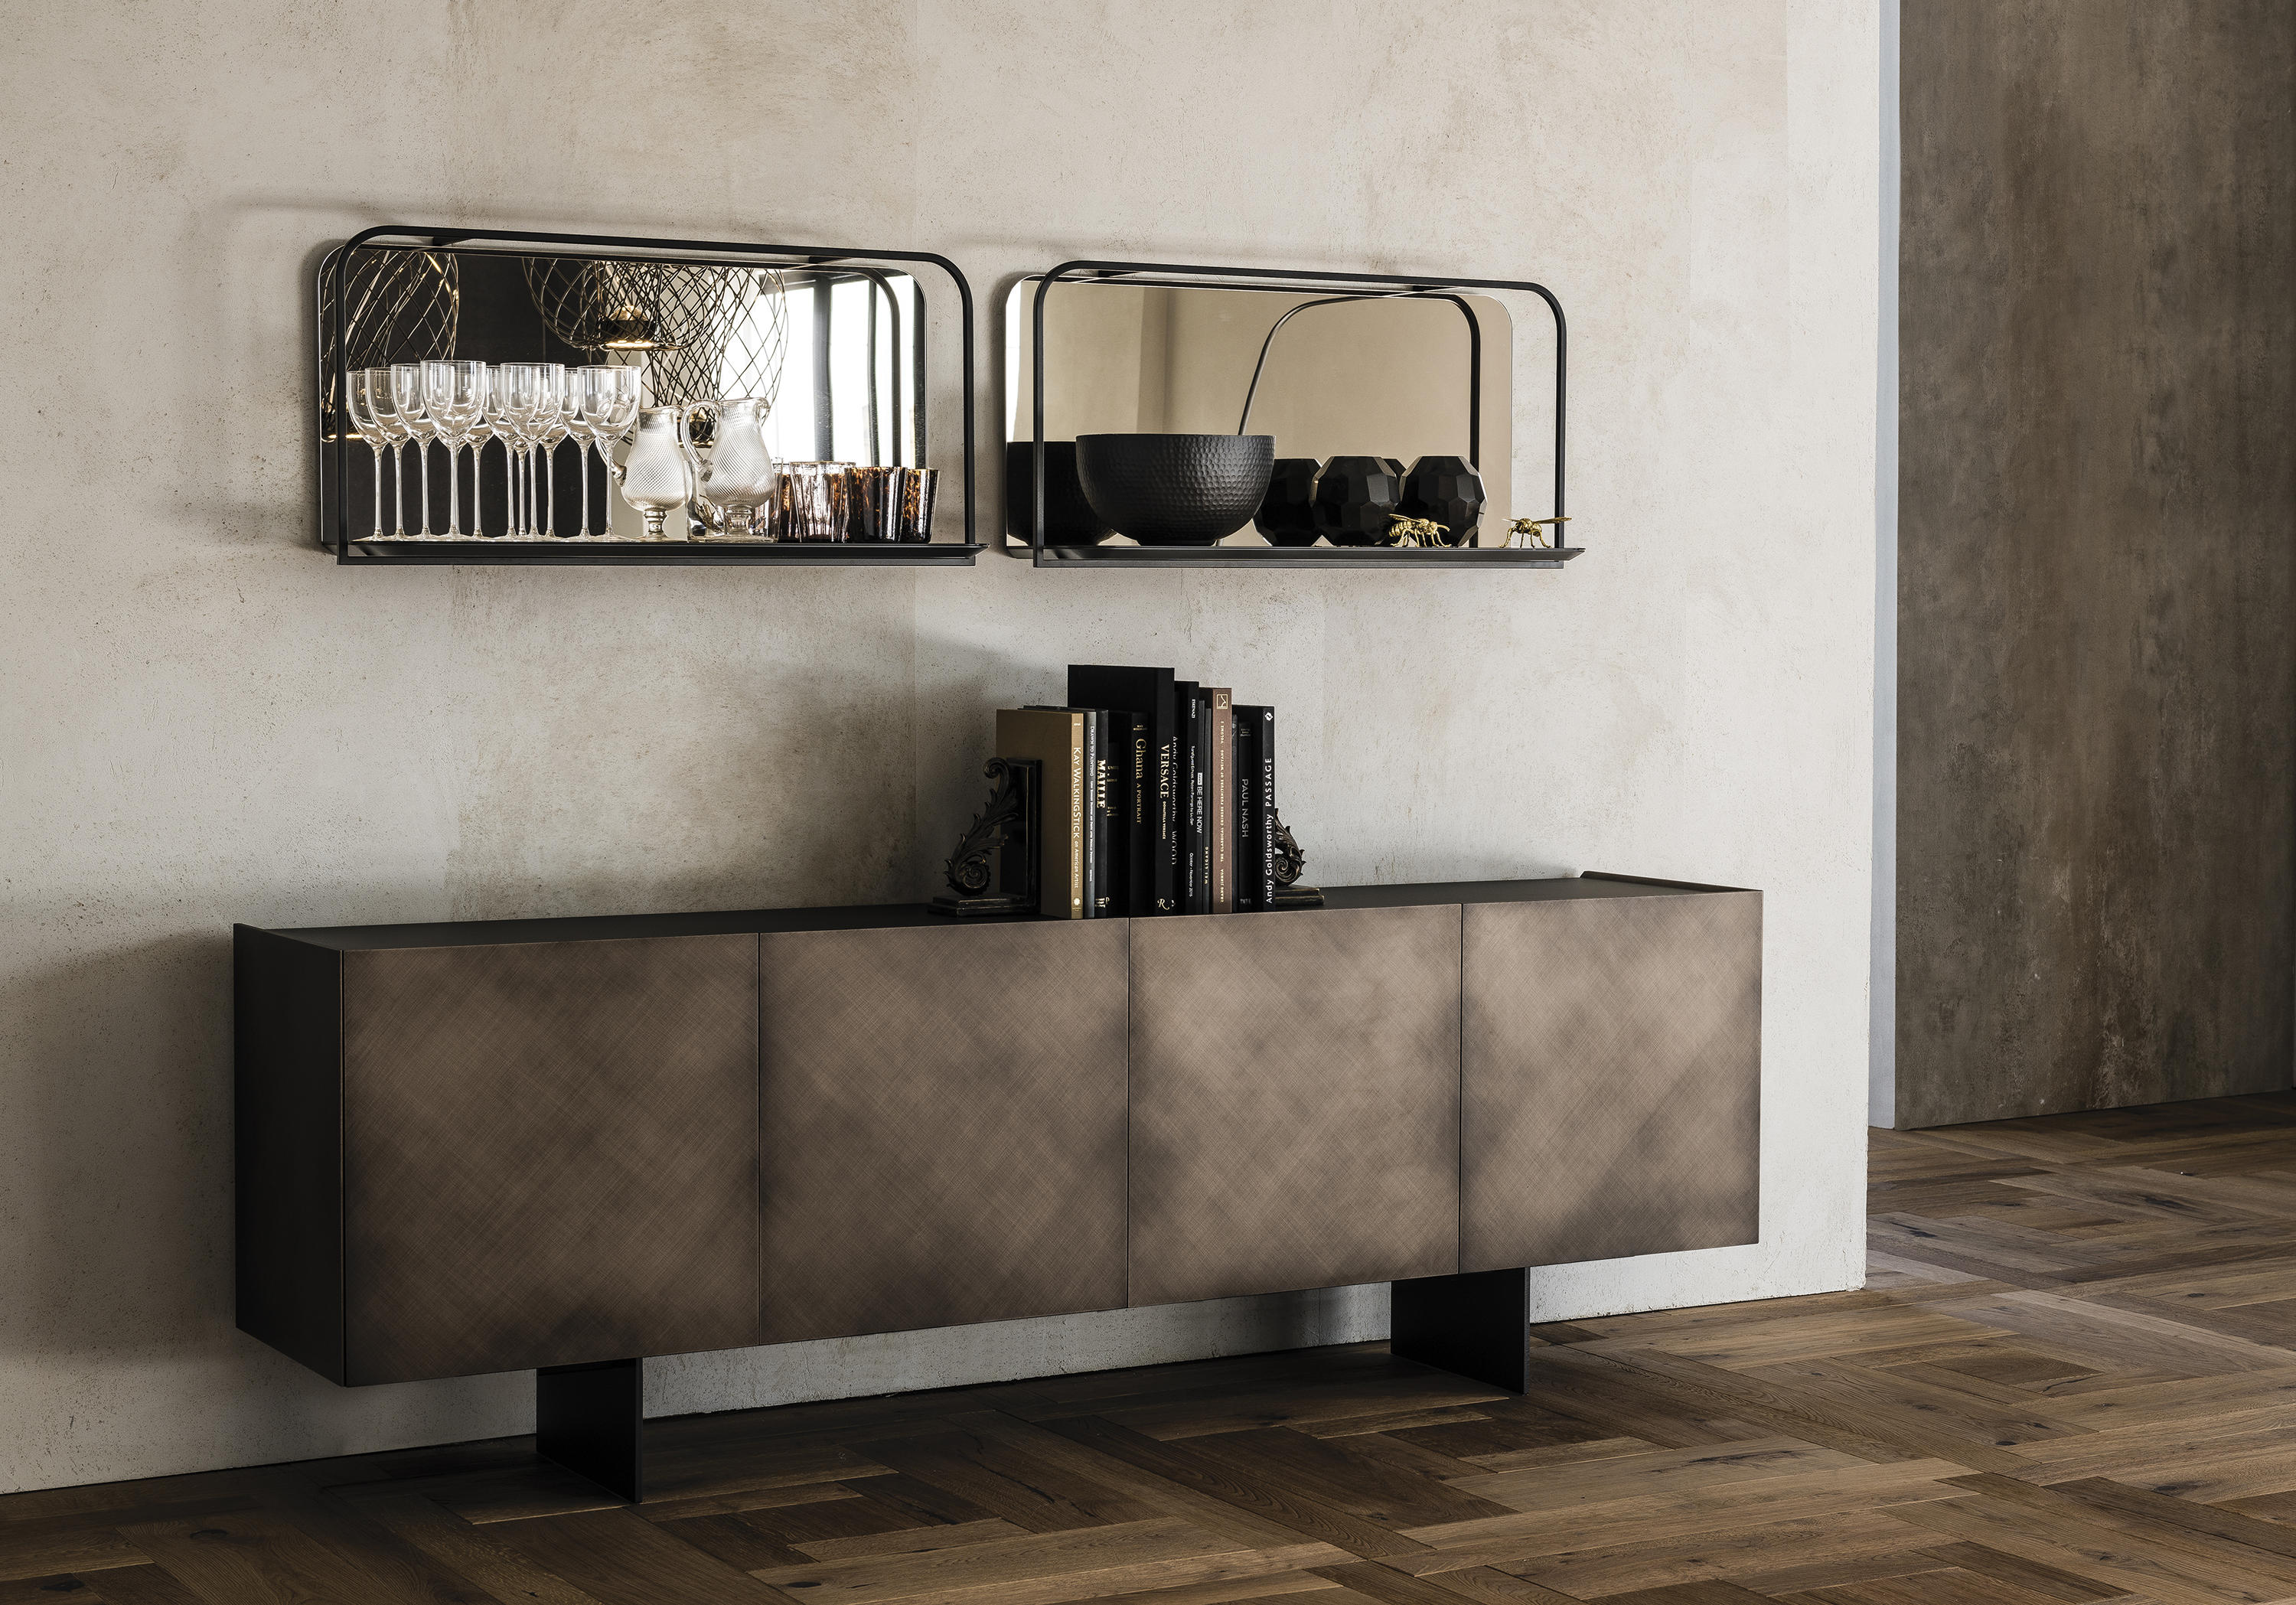 La Credenza En Español : Arizona sideboards kommoden von cattelan italia architonic